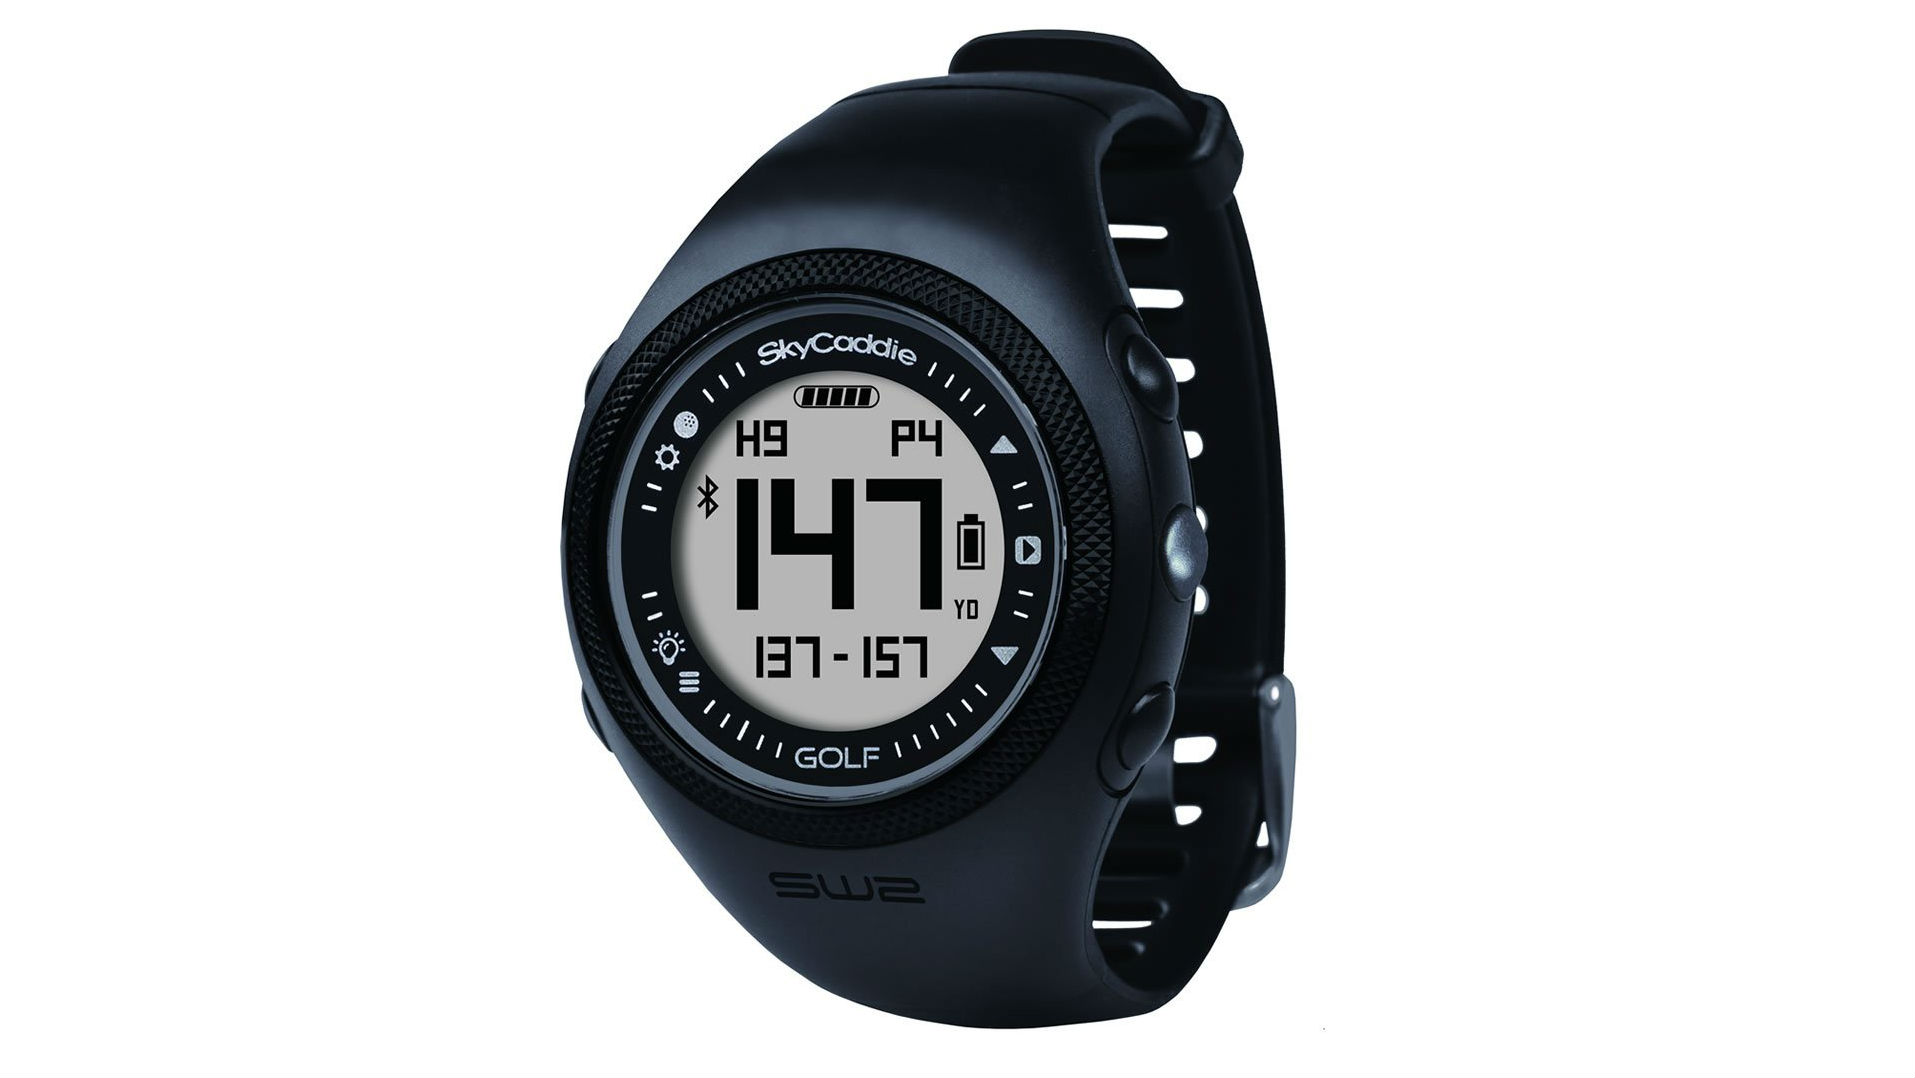 Sky Cad S Sw Is One Of The Best Looking Gps Watches And Also One Of The Easiest To Use If Youve Never Played A Round With A Gps Watch On Before